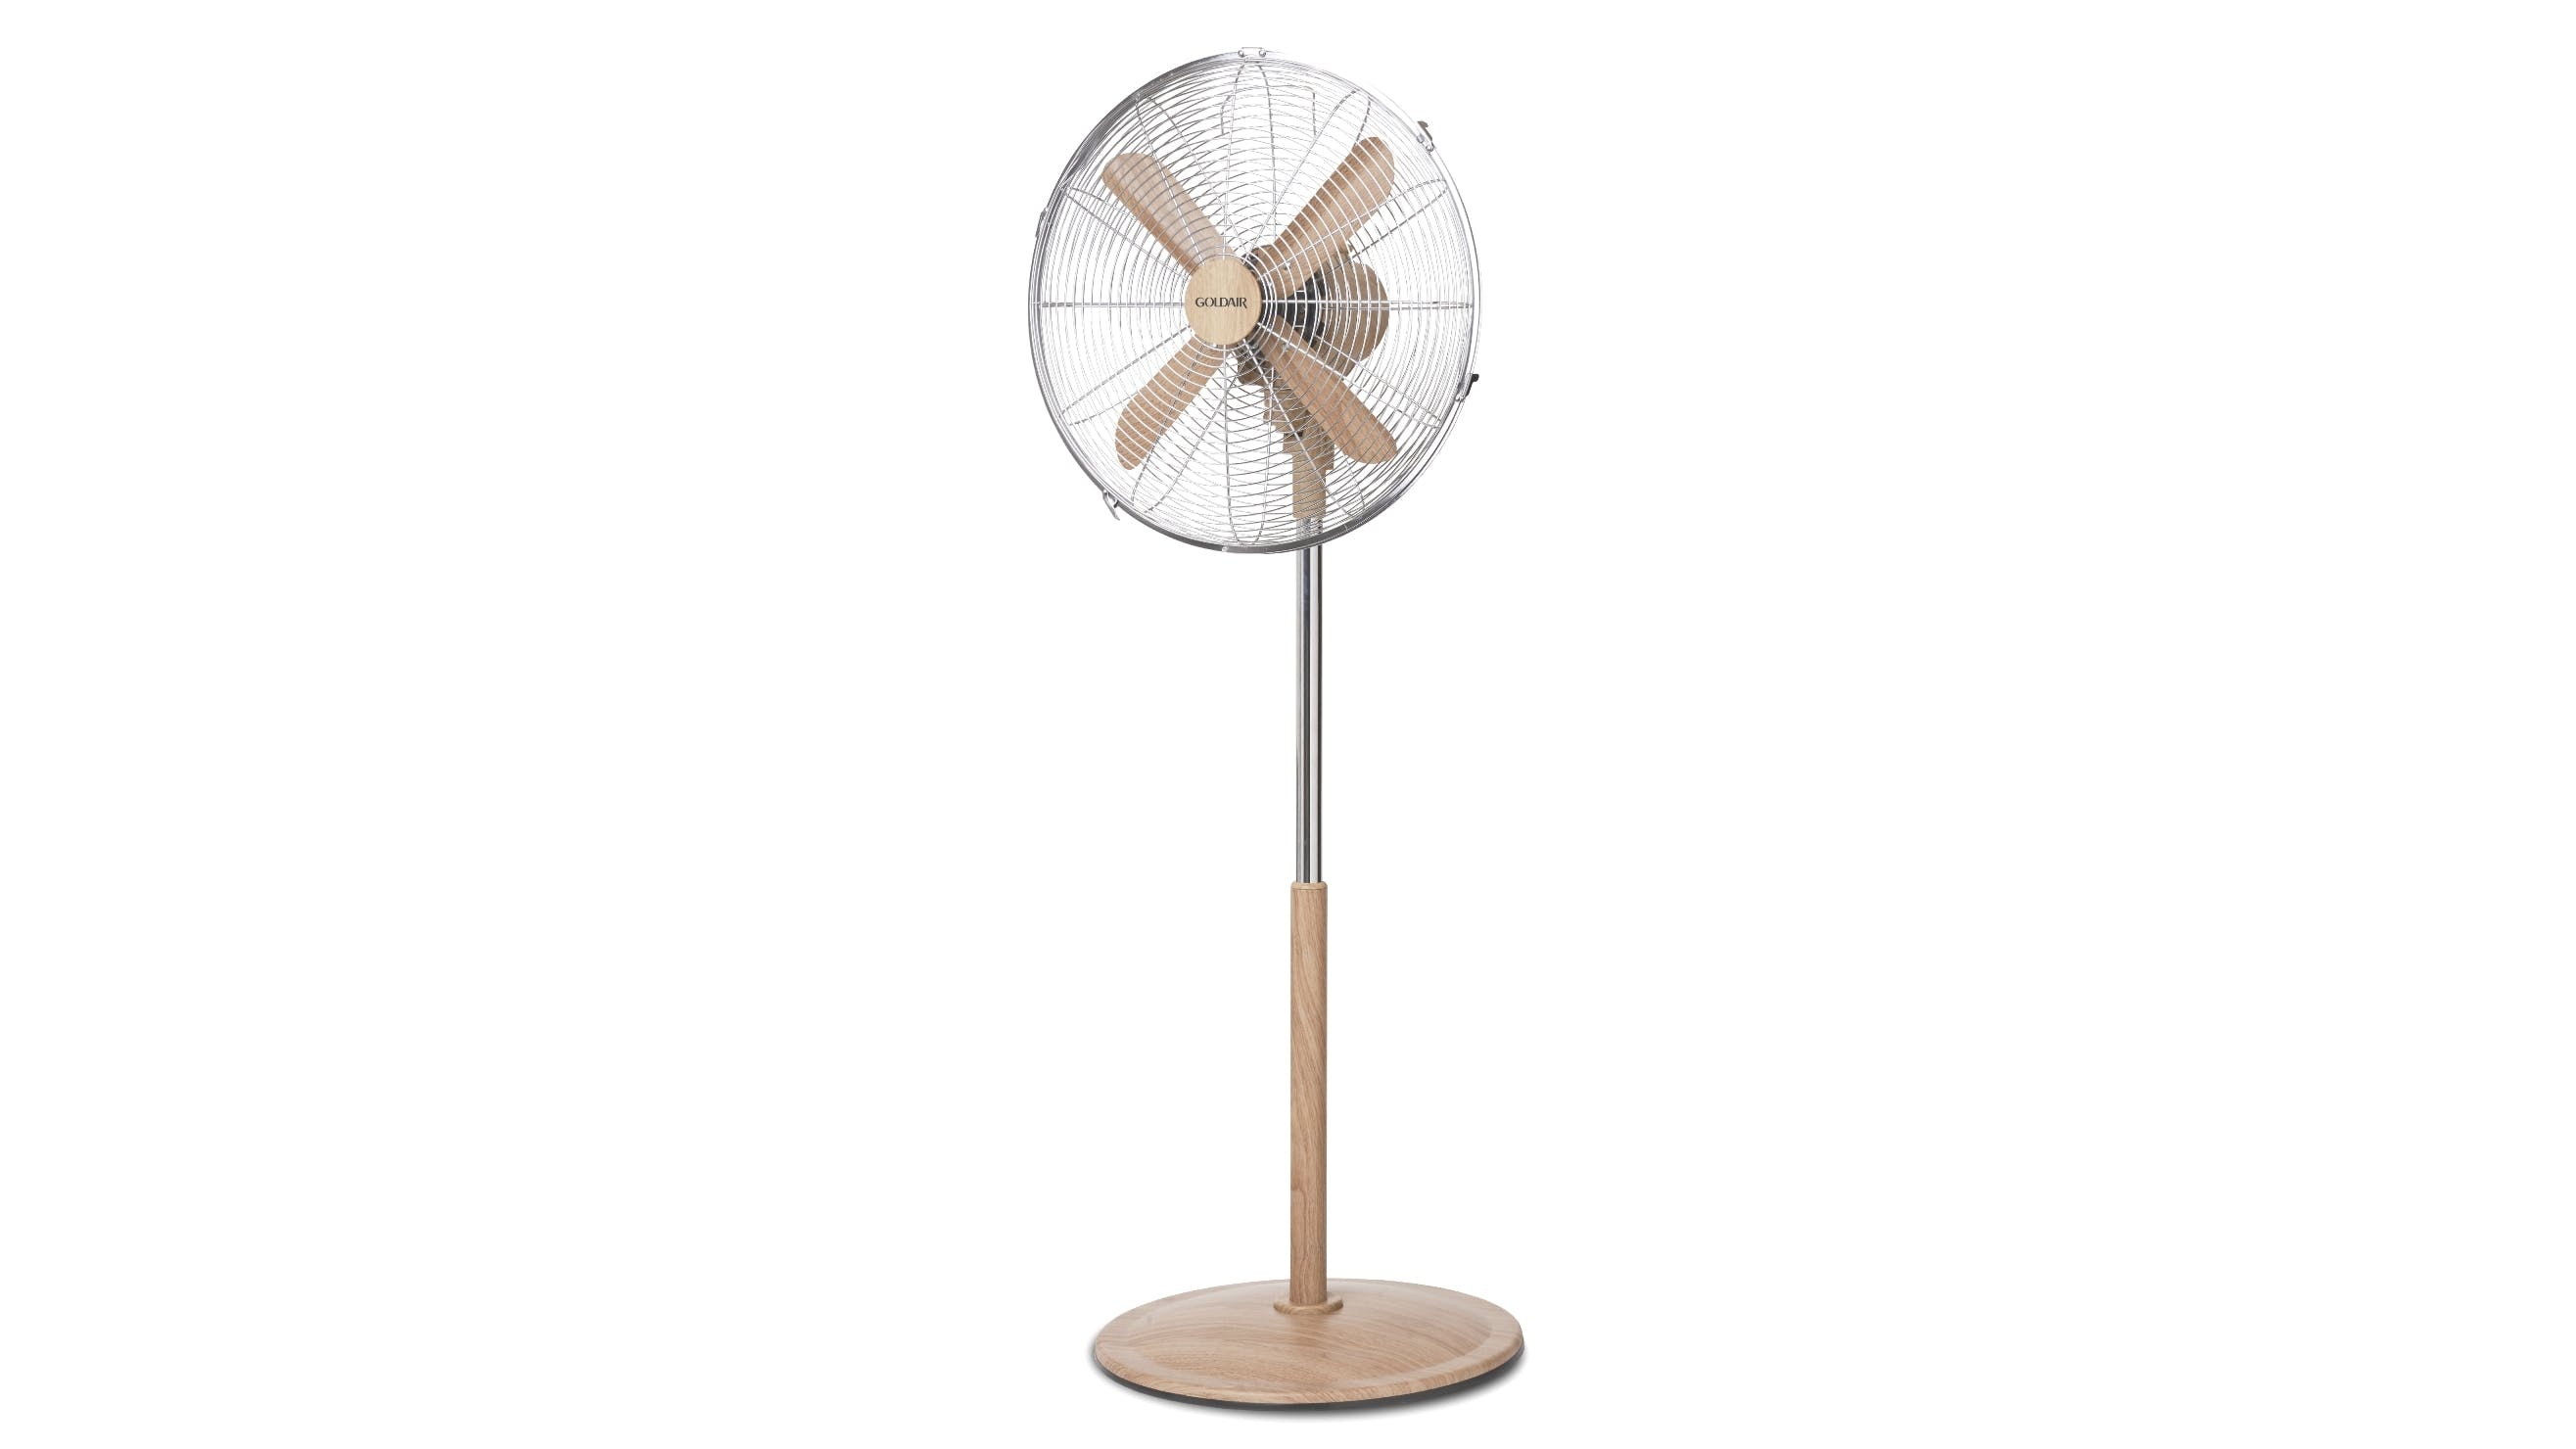 sur home fan pedestal oscillant heating ventilation oscillating easy en portable ventilateur pied fans